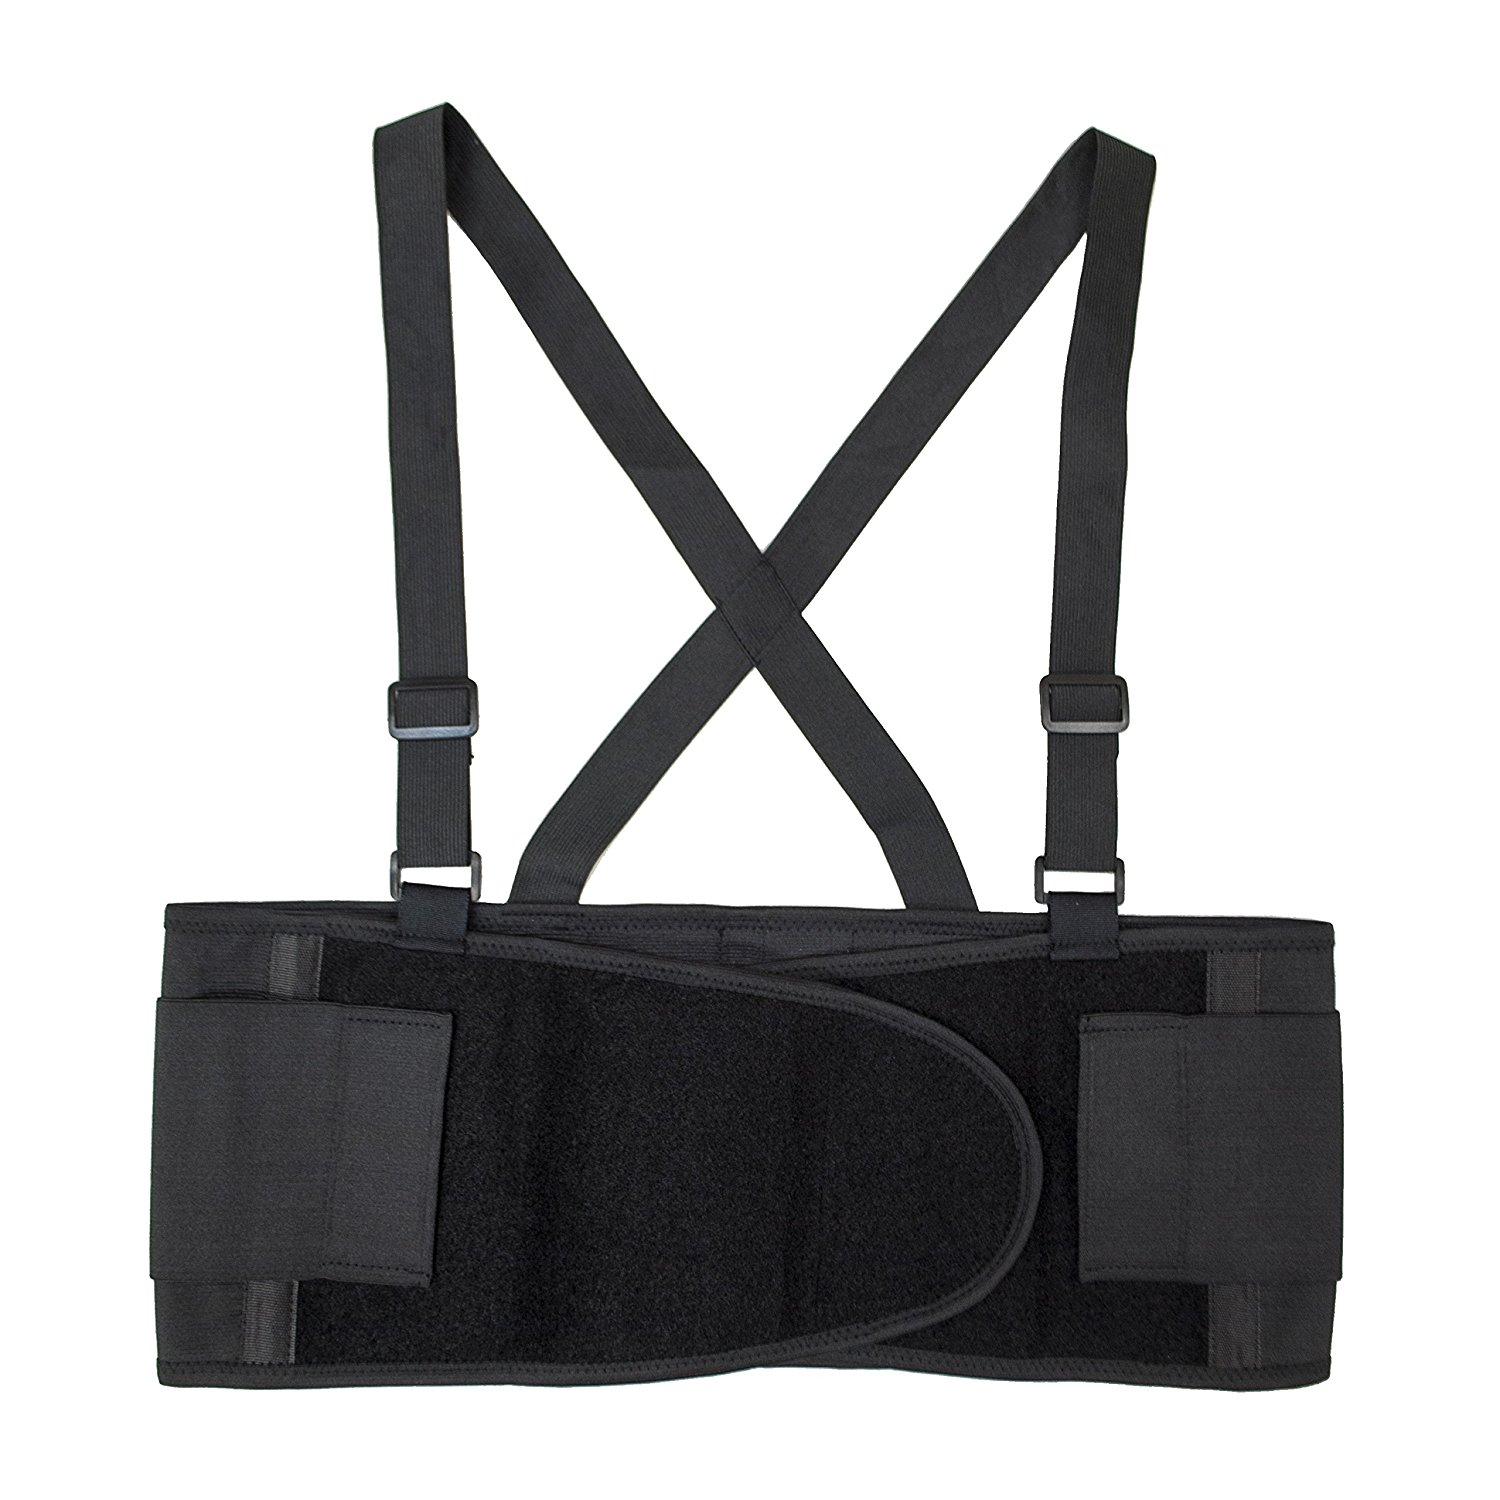 BACK02XXL Comfort Lower Back Support